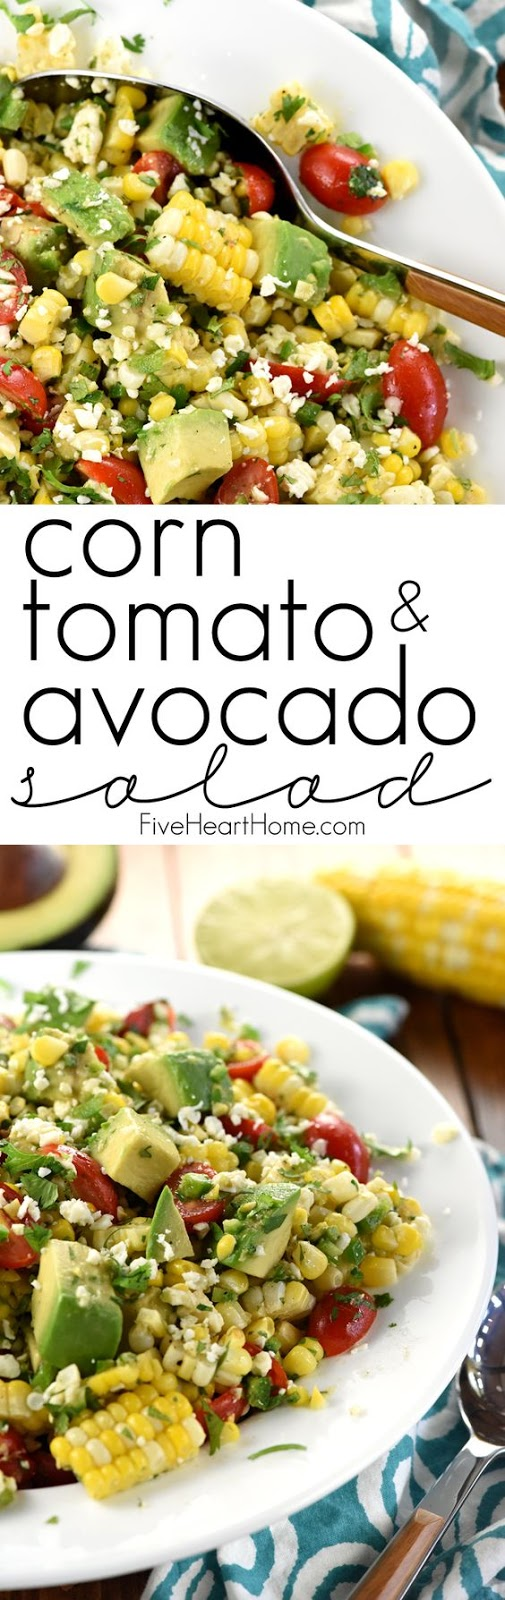 Corn, Tomato, & Avocado Salad